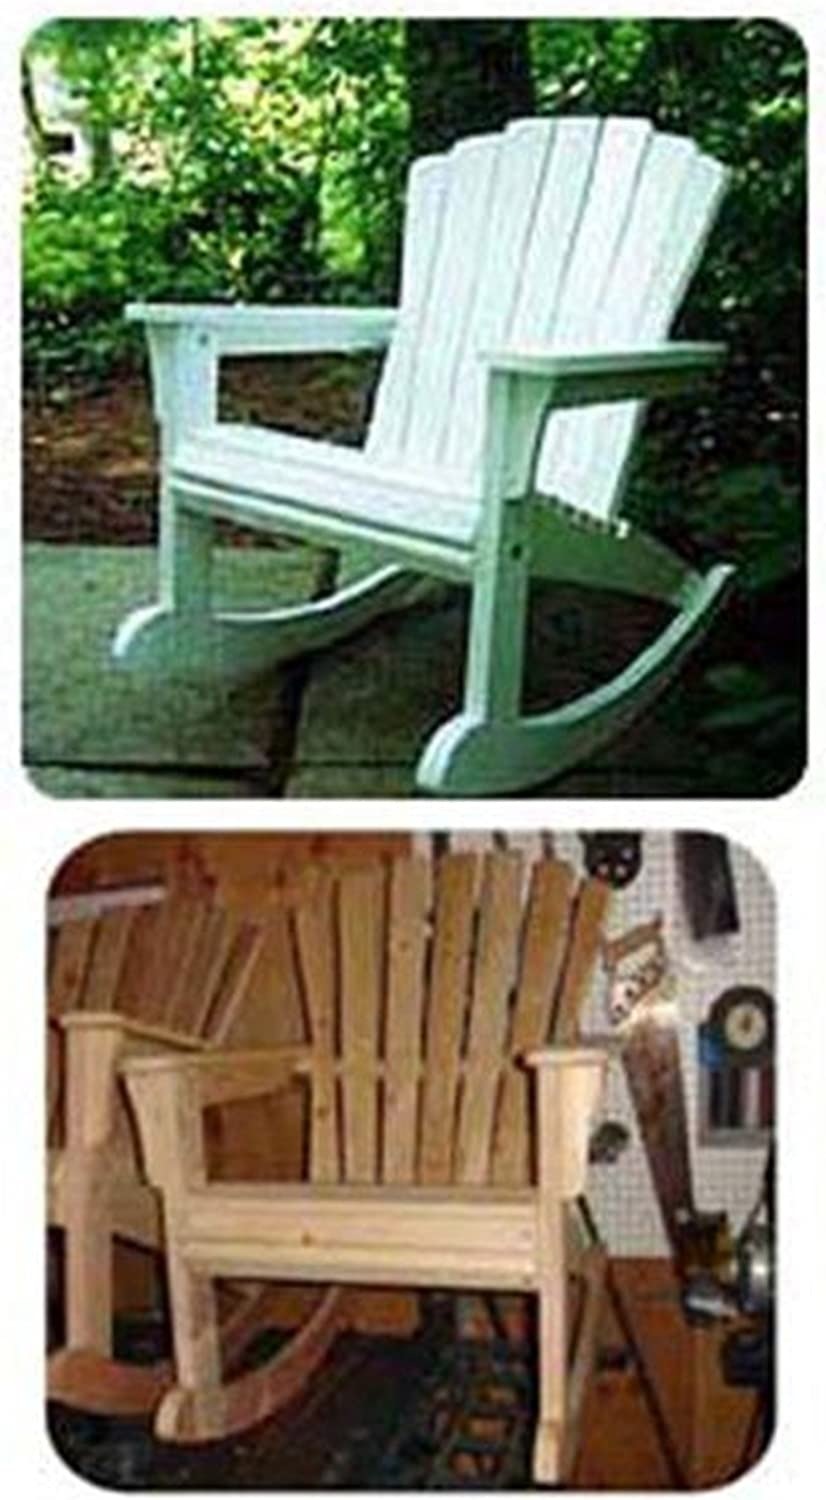 Woodworking Project Paper Plan to Build Rocking Adirondack Chair - Outdoor Furniture Woodworking Project Plans -